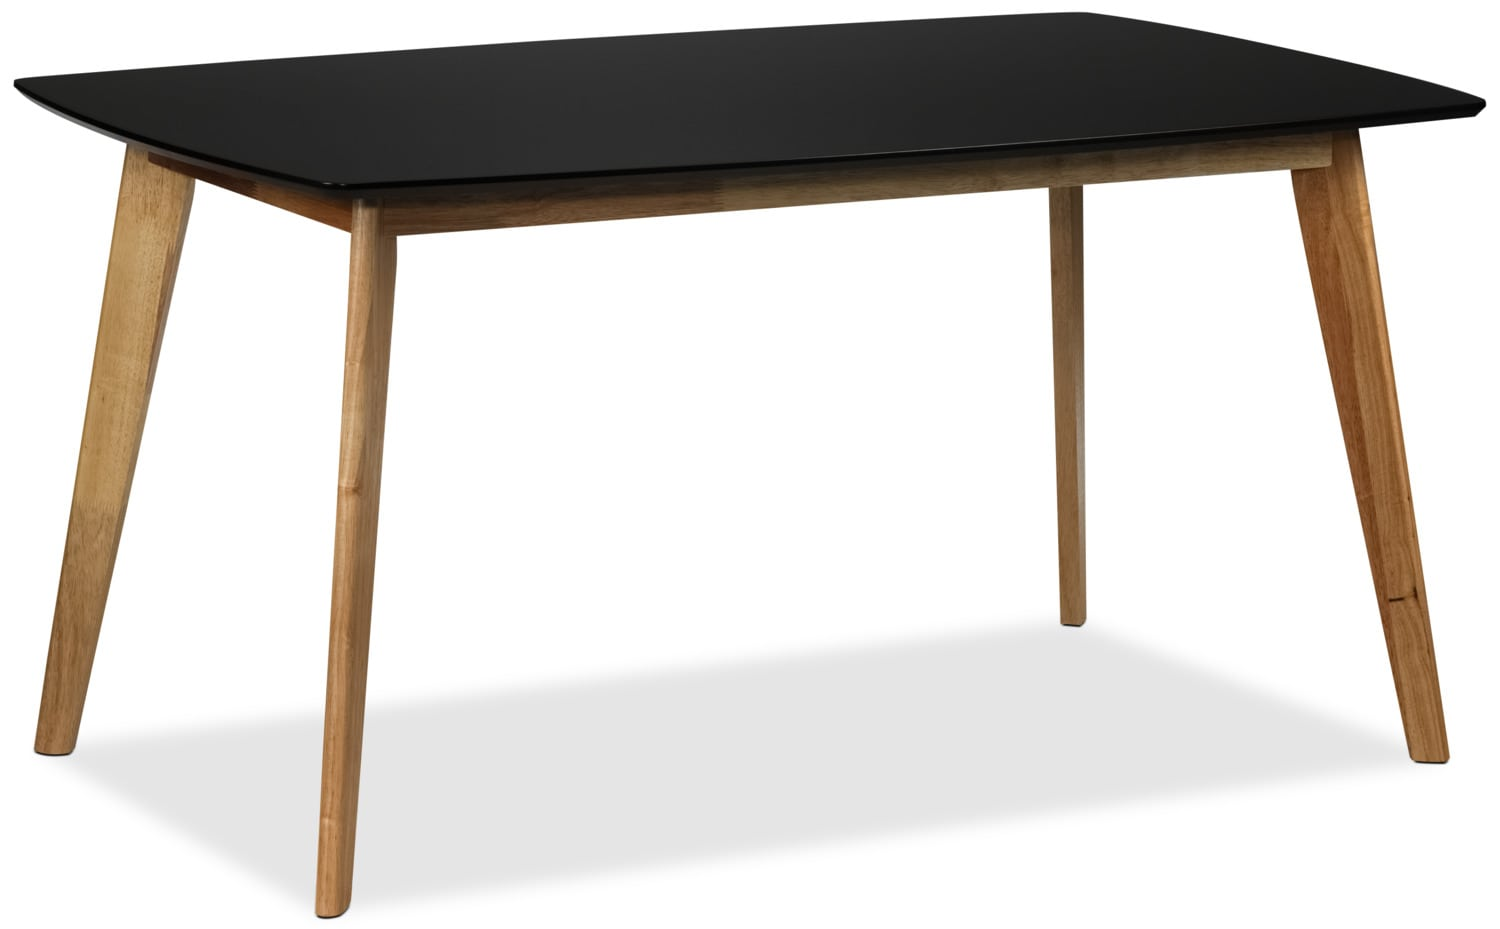 Casual Dining Room Furniture - Vivien Dining Table - Black